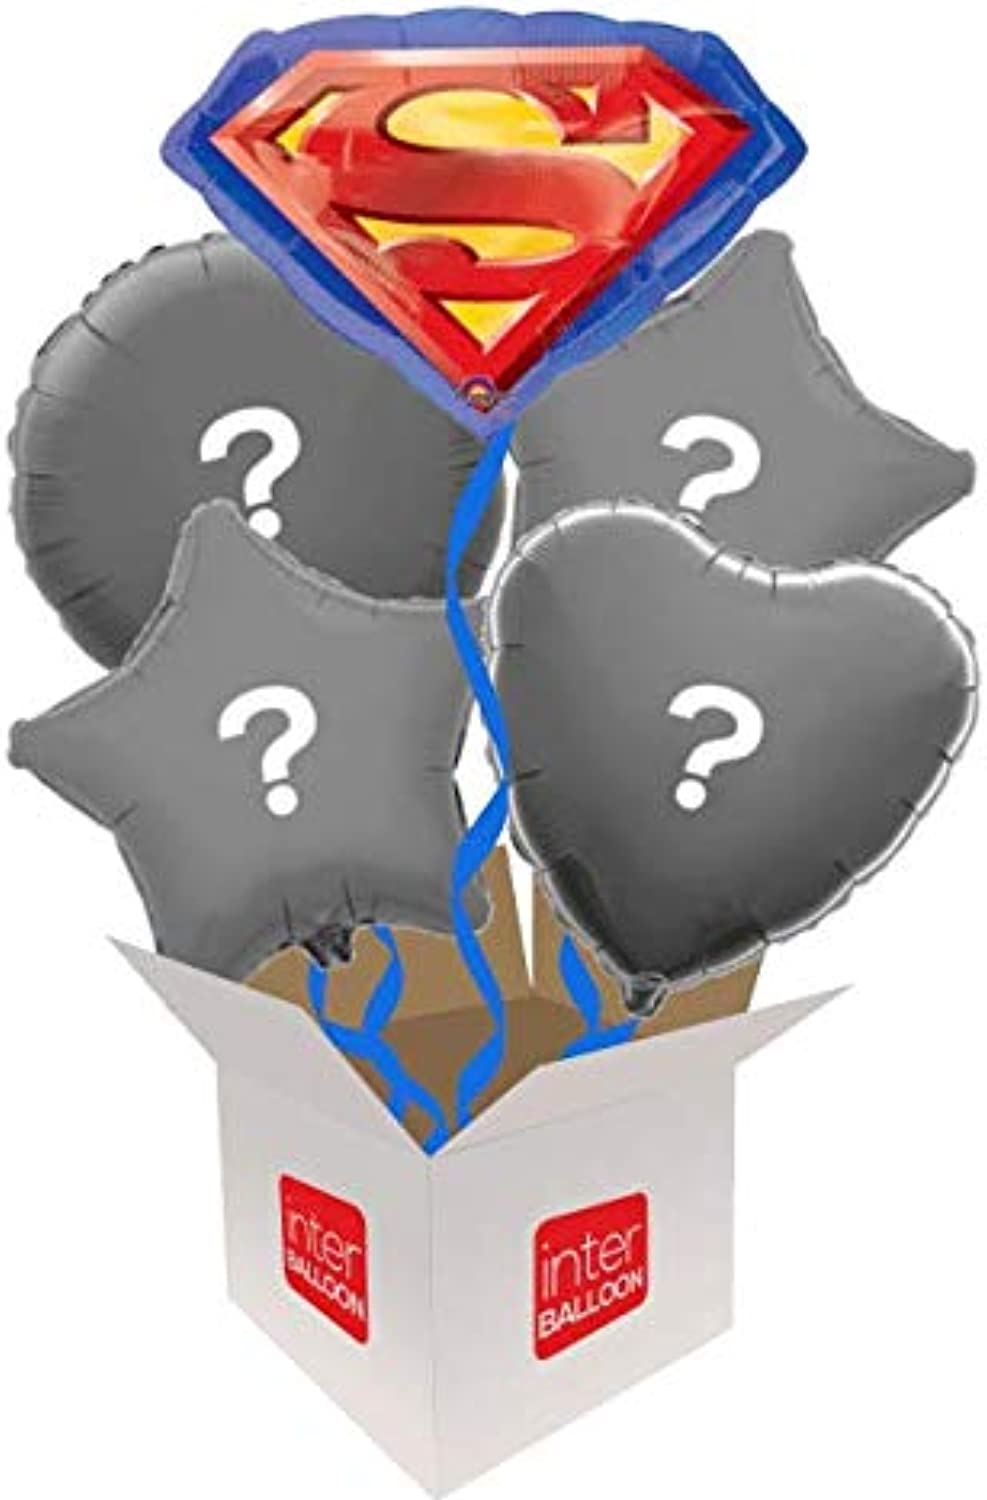 InterBalloon Helium Inflated 23  Superman Emblem Balloon Delivered in a Box with 4 Extra Balloons of your choice